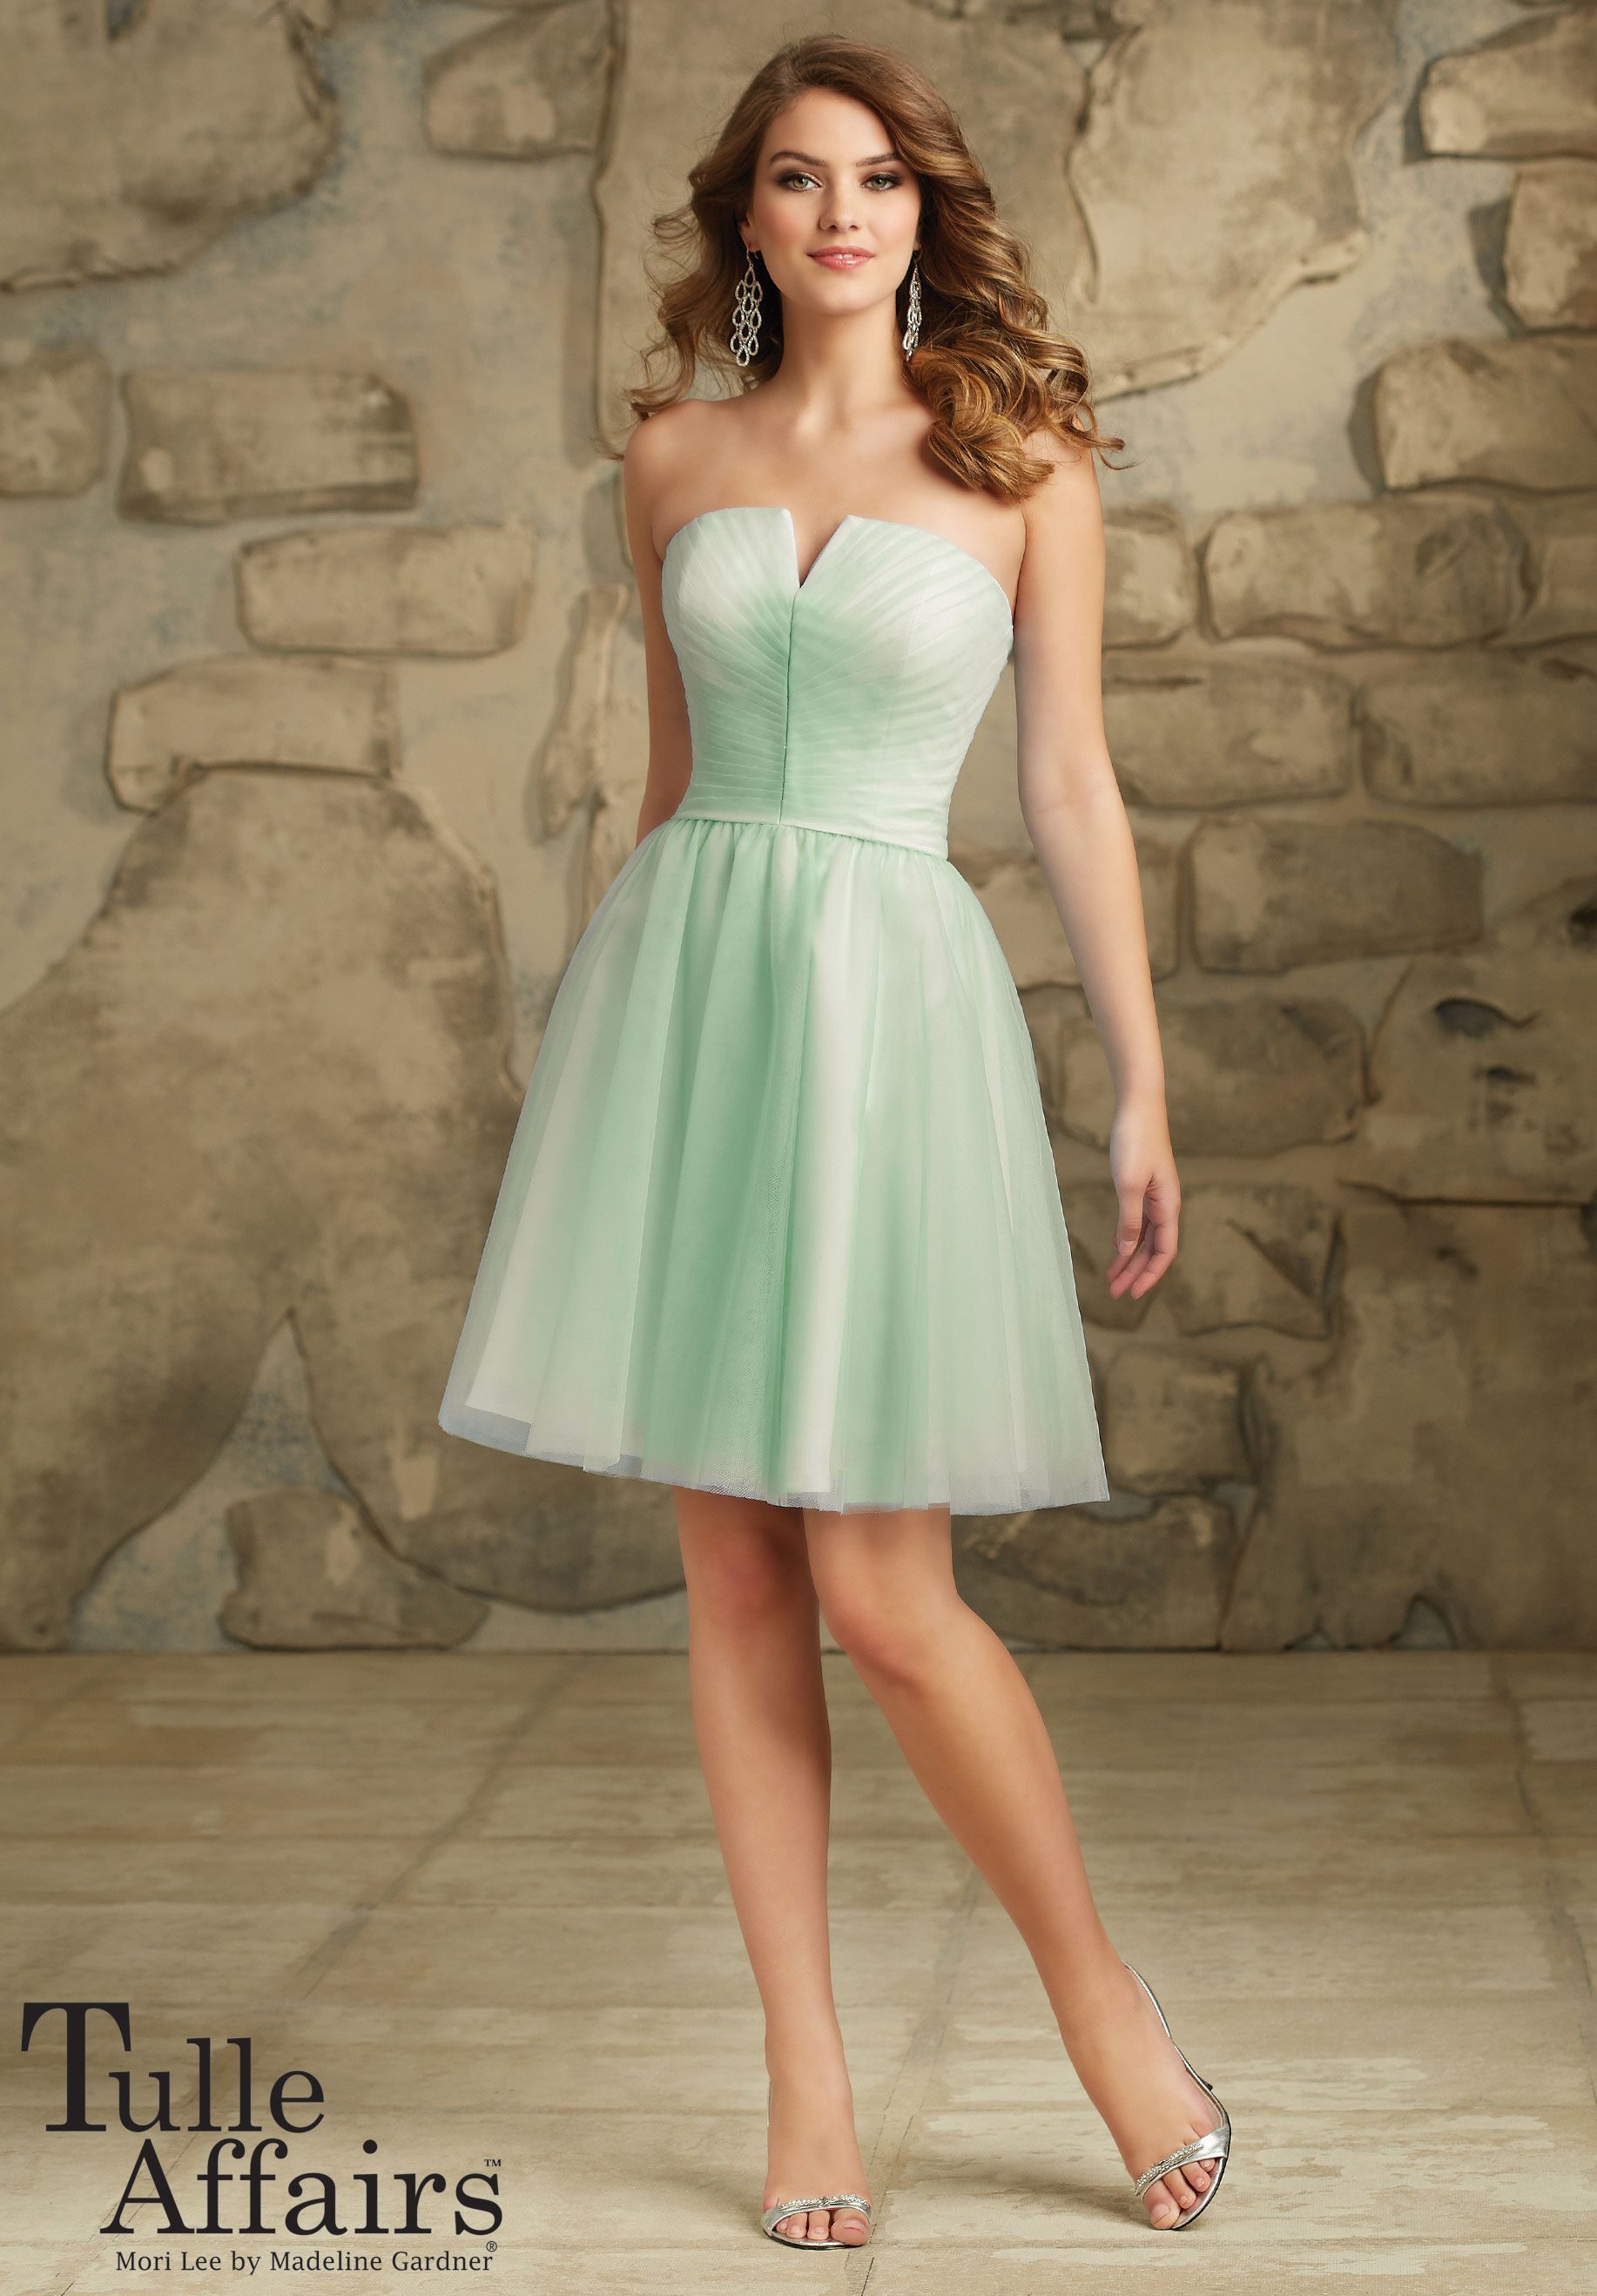 Tulle zipper back shown in mint available in all tulle colors affairs bridesmaids by mori lee 113 tulle affair bridesmaids by mori lee prom bridal bridesmaid pageant special occasion gowns ombrellifo Image collections